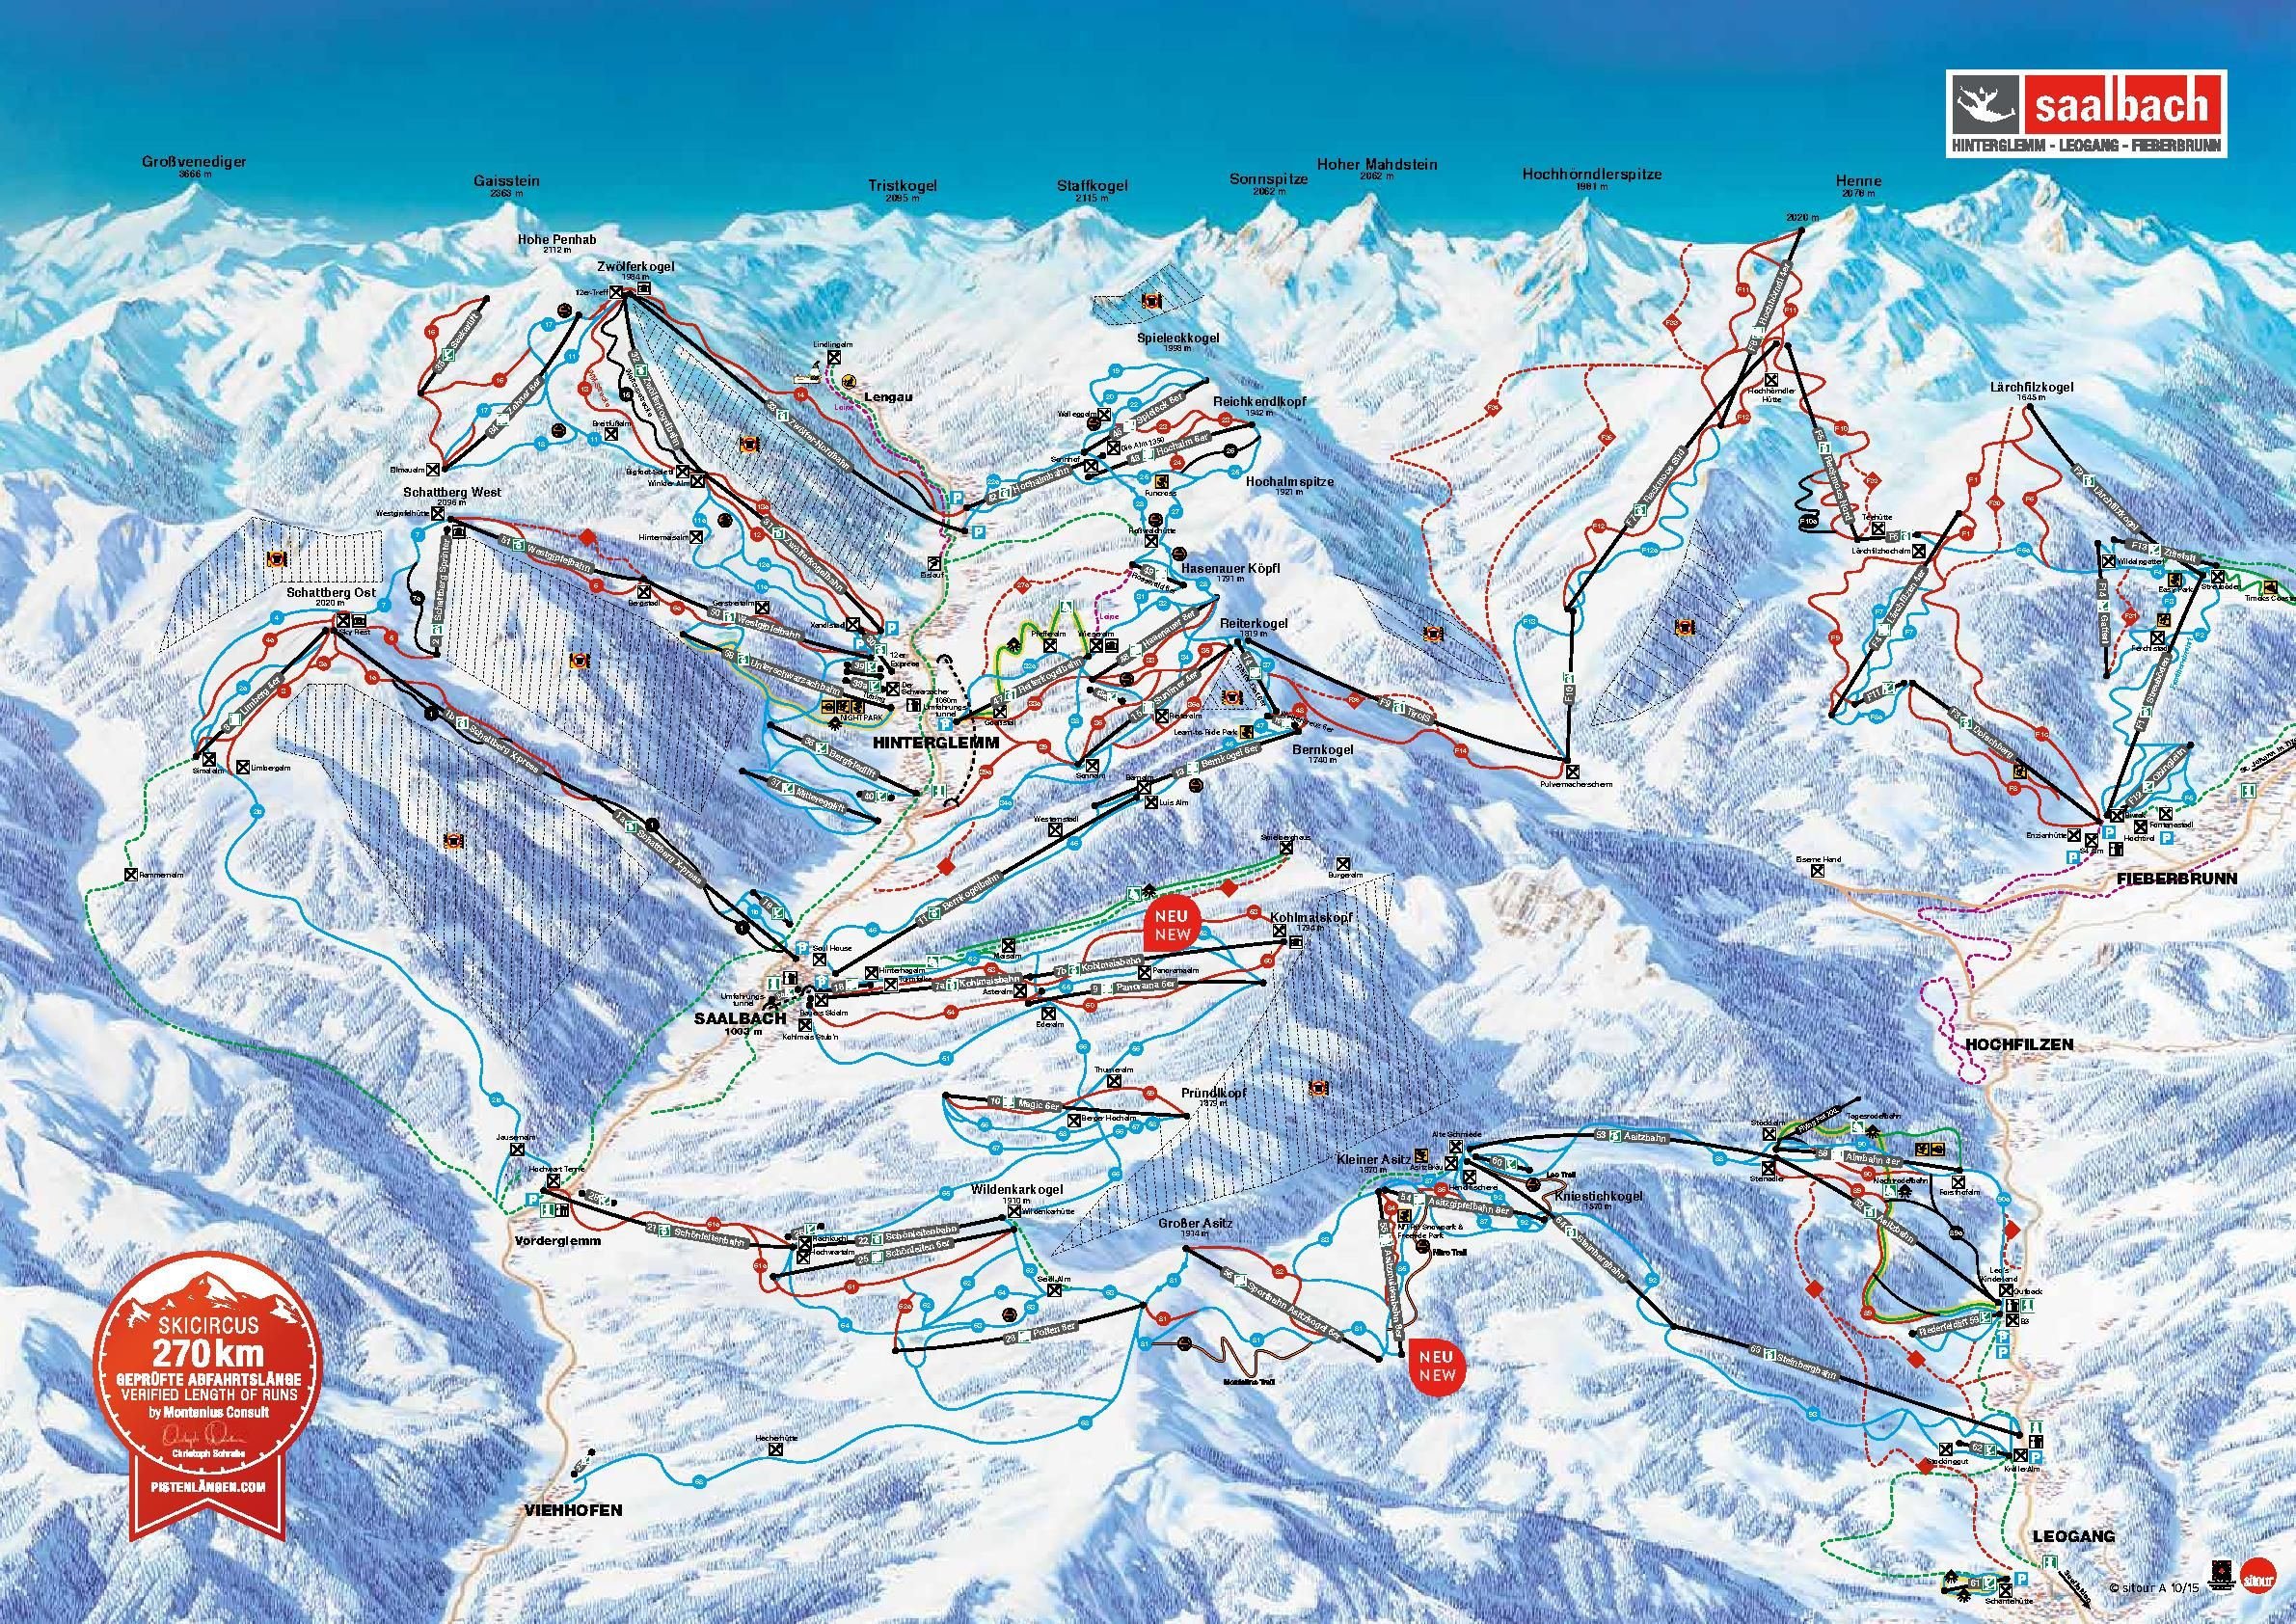 Piste Map For 2018 19 Published In 2018 At Saalbach Hinterglemm